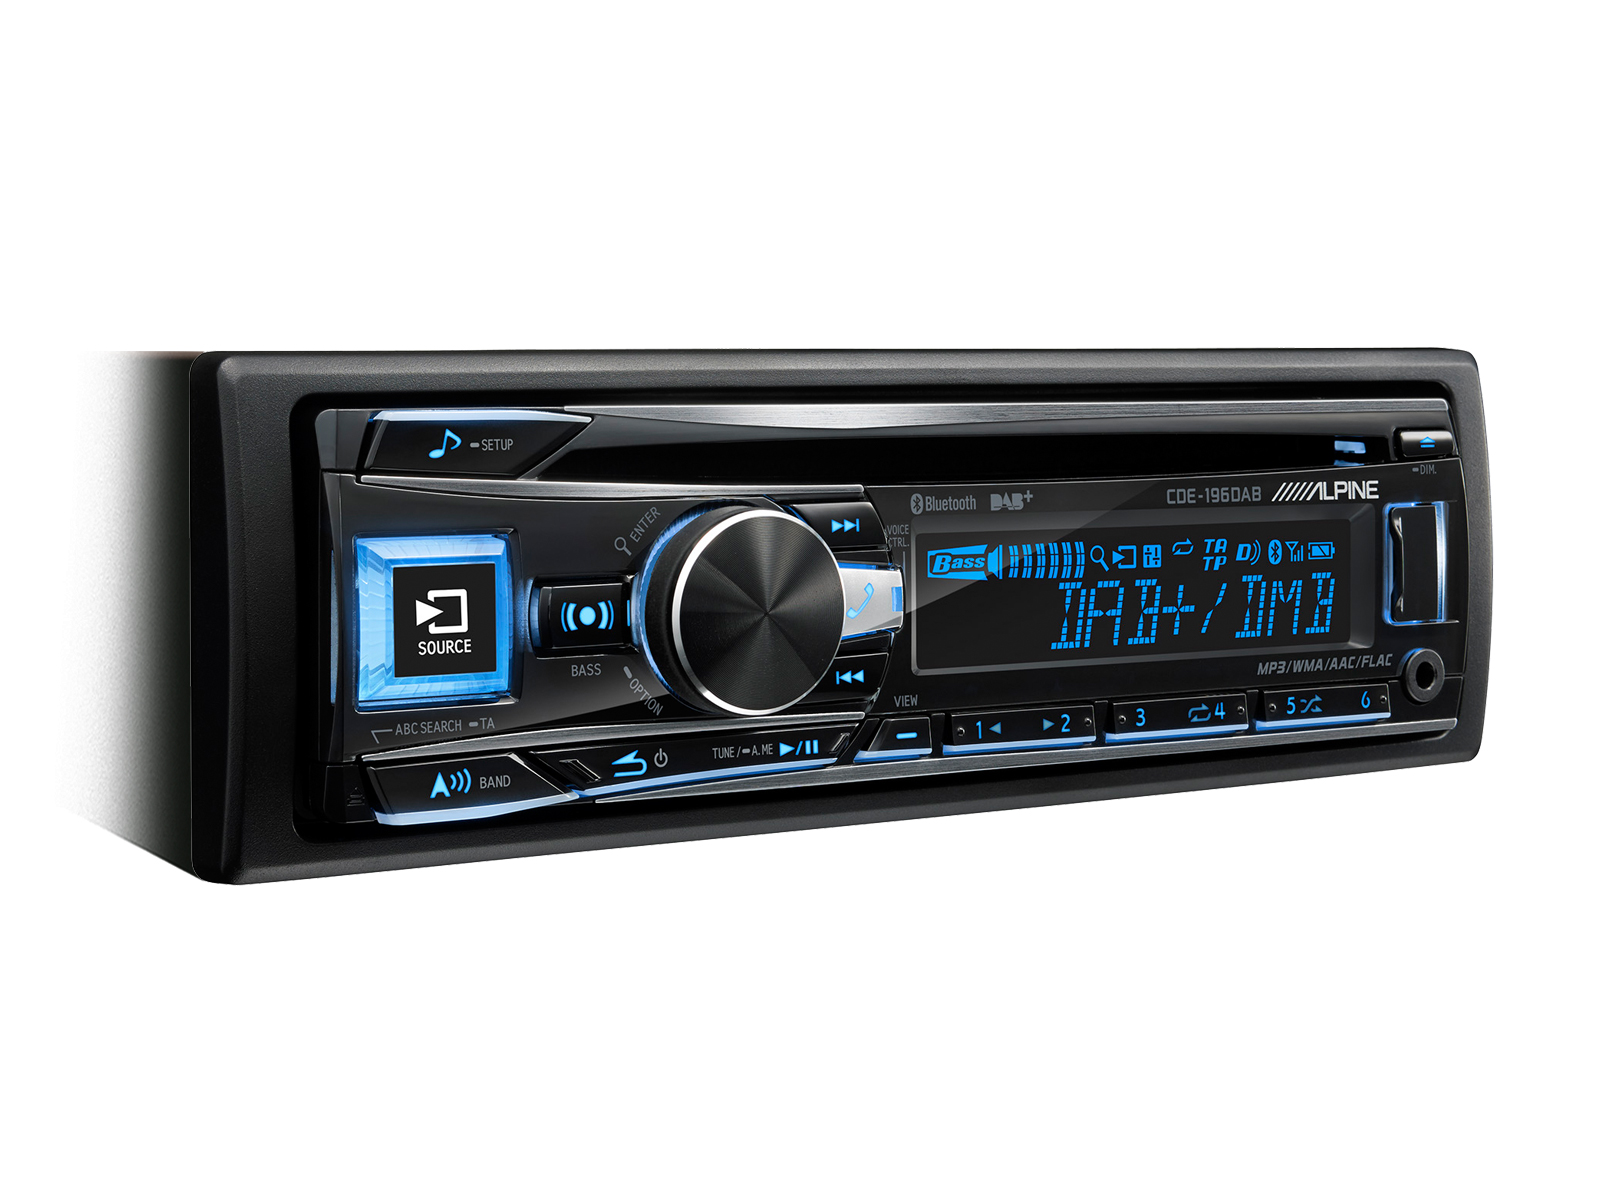 Alpine CDE-196DAB CD/DAB tuner+USB+Bluetooth